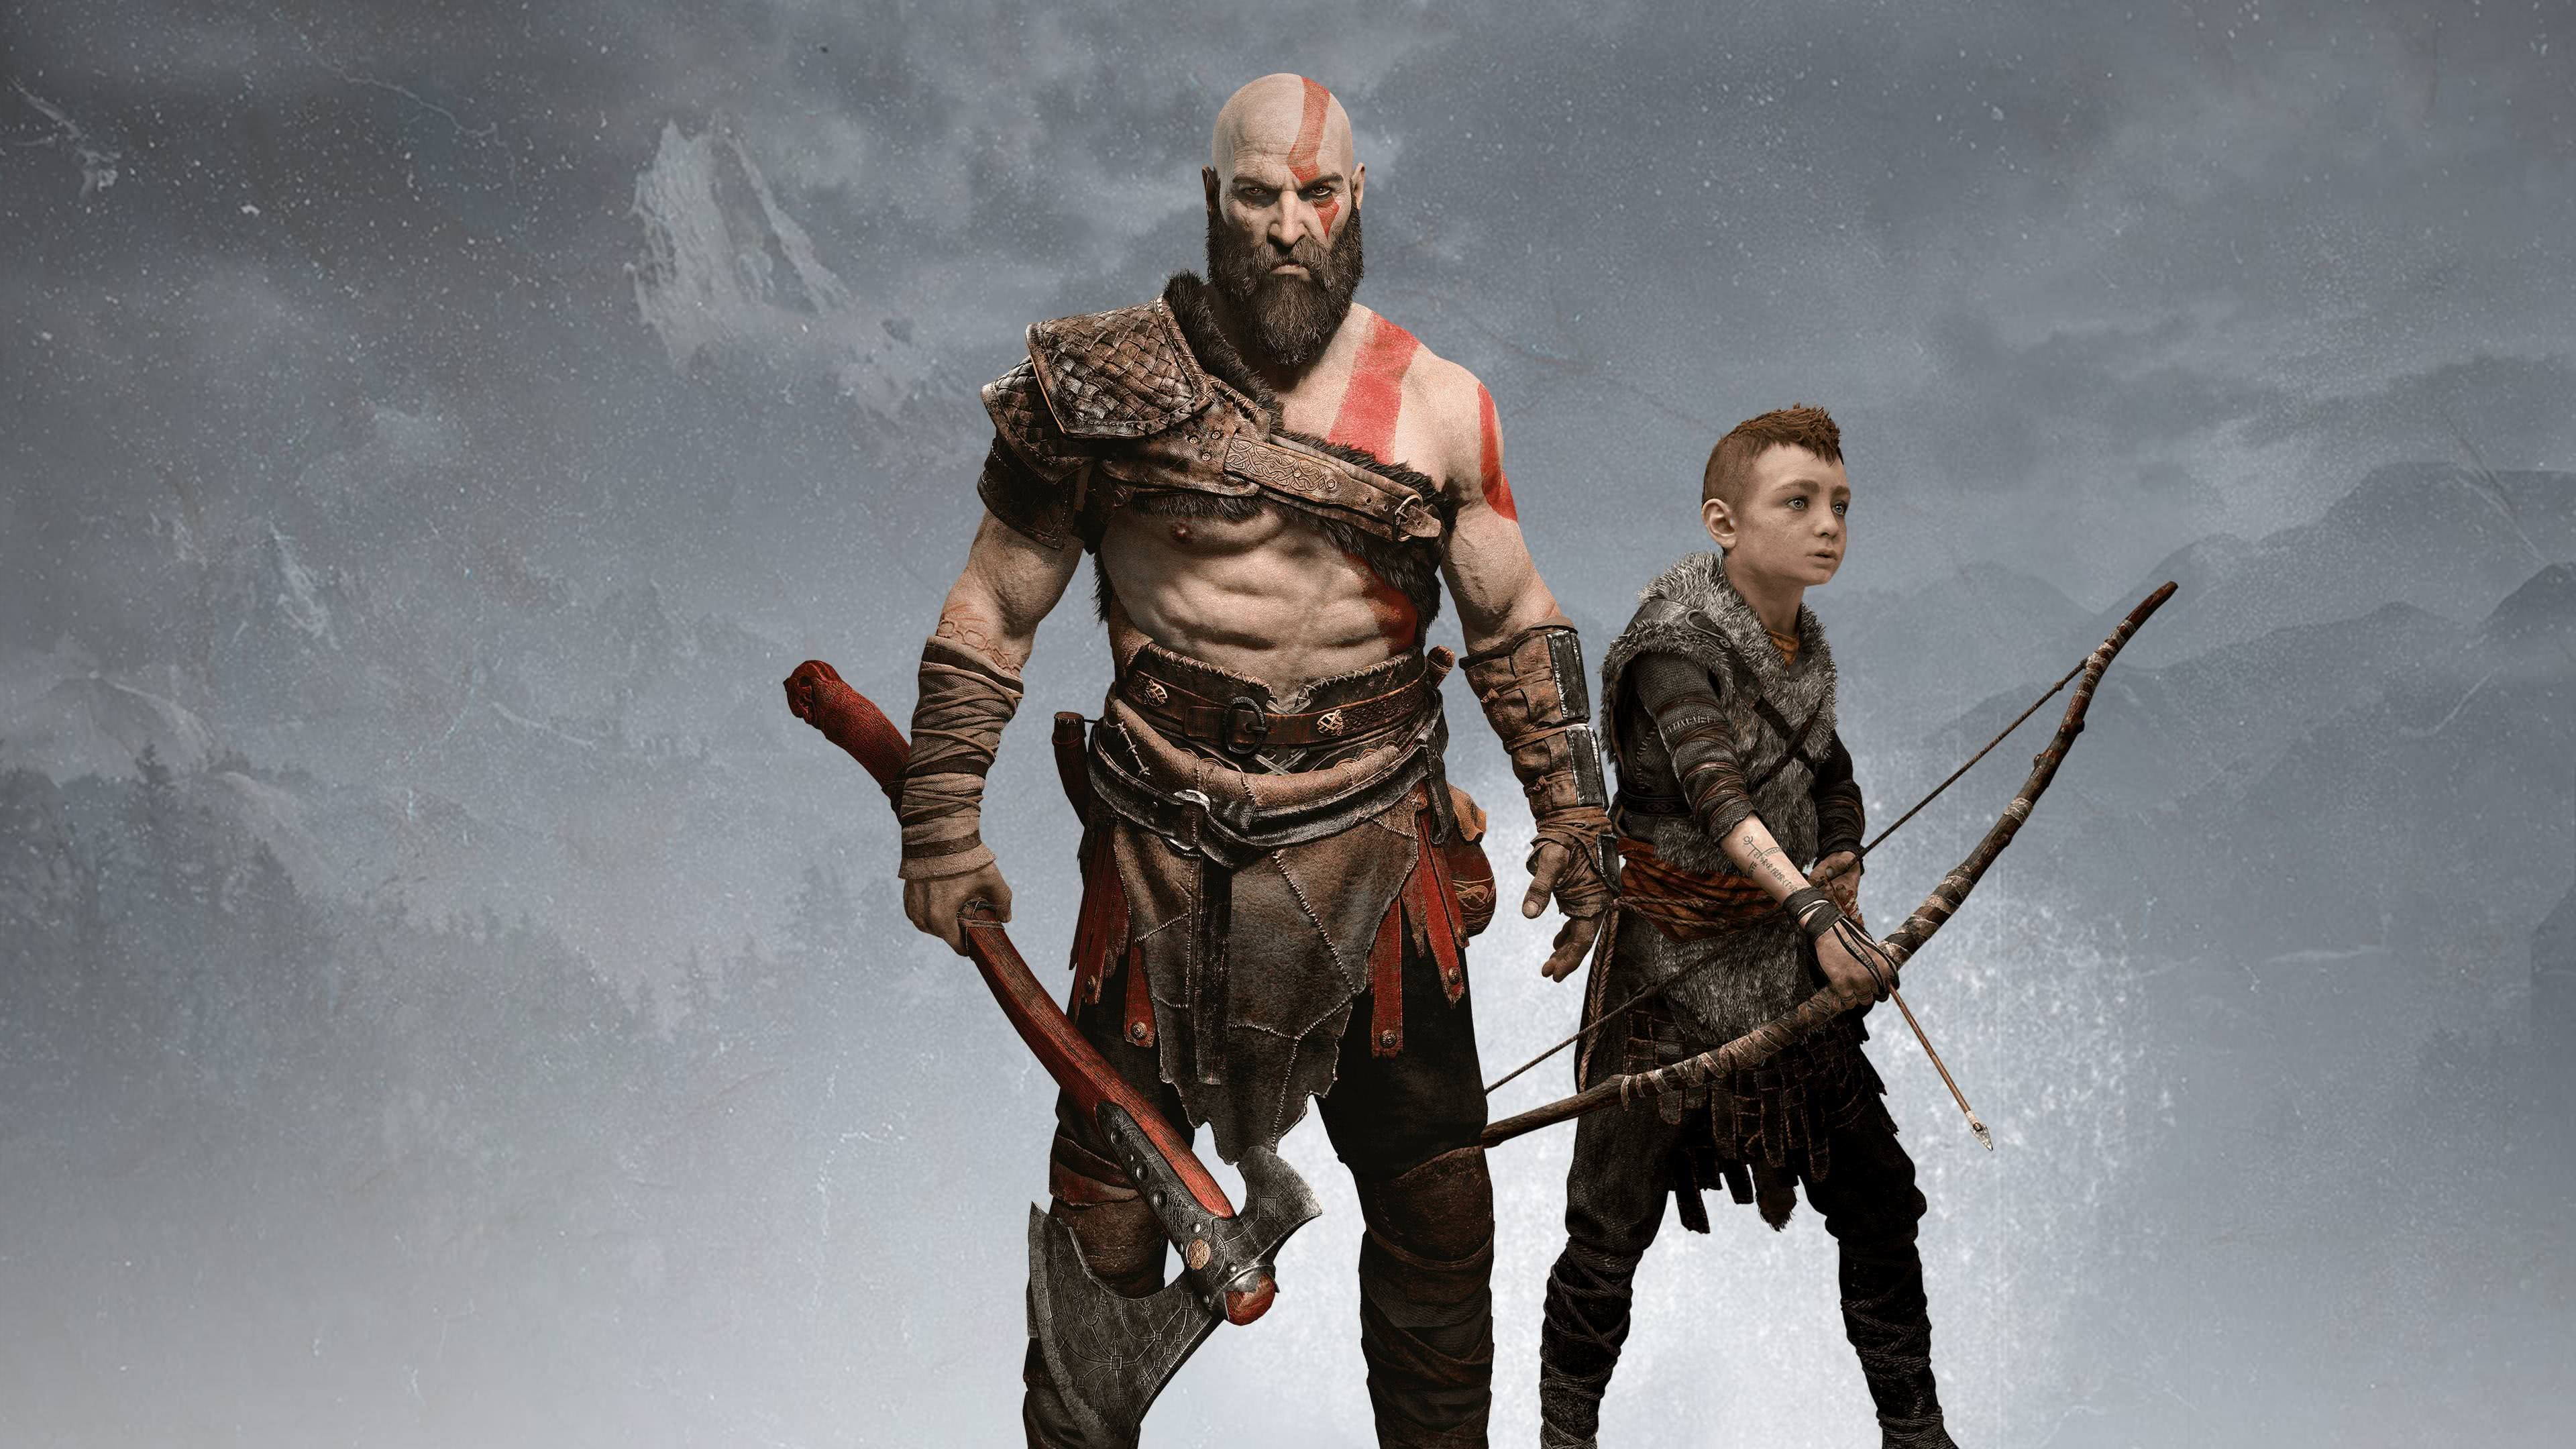 God Of War 4 Wallpapers Top Free God Of War 4 Backgrounds